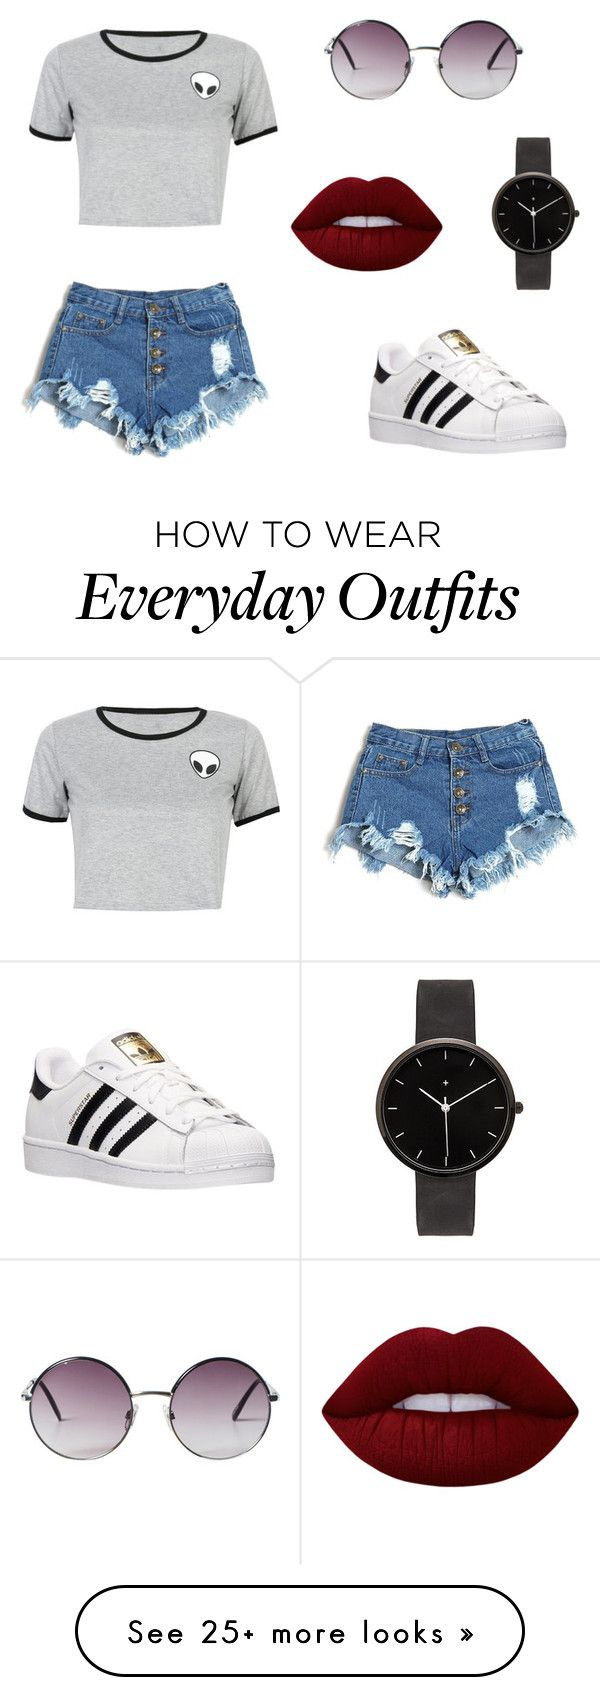 """This is a everyday outfit I would wear down the street!!"" by mirandamillerr on Polyvore featuring WithChic, adidas, Monki, I Love Ugly and Lime Crime"